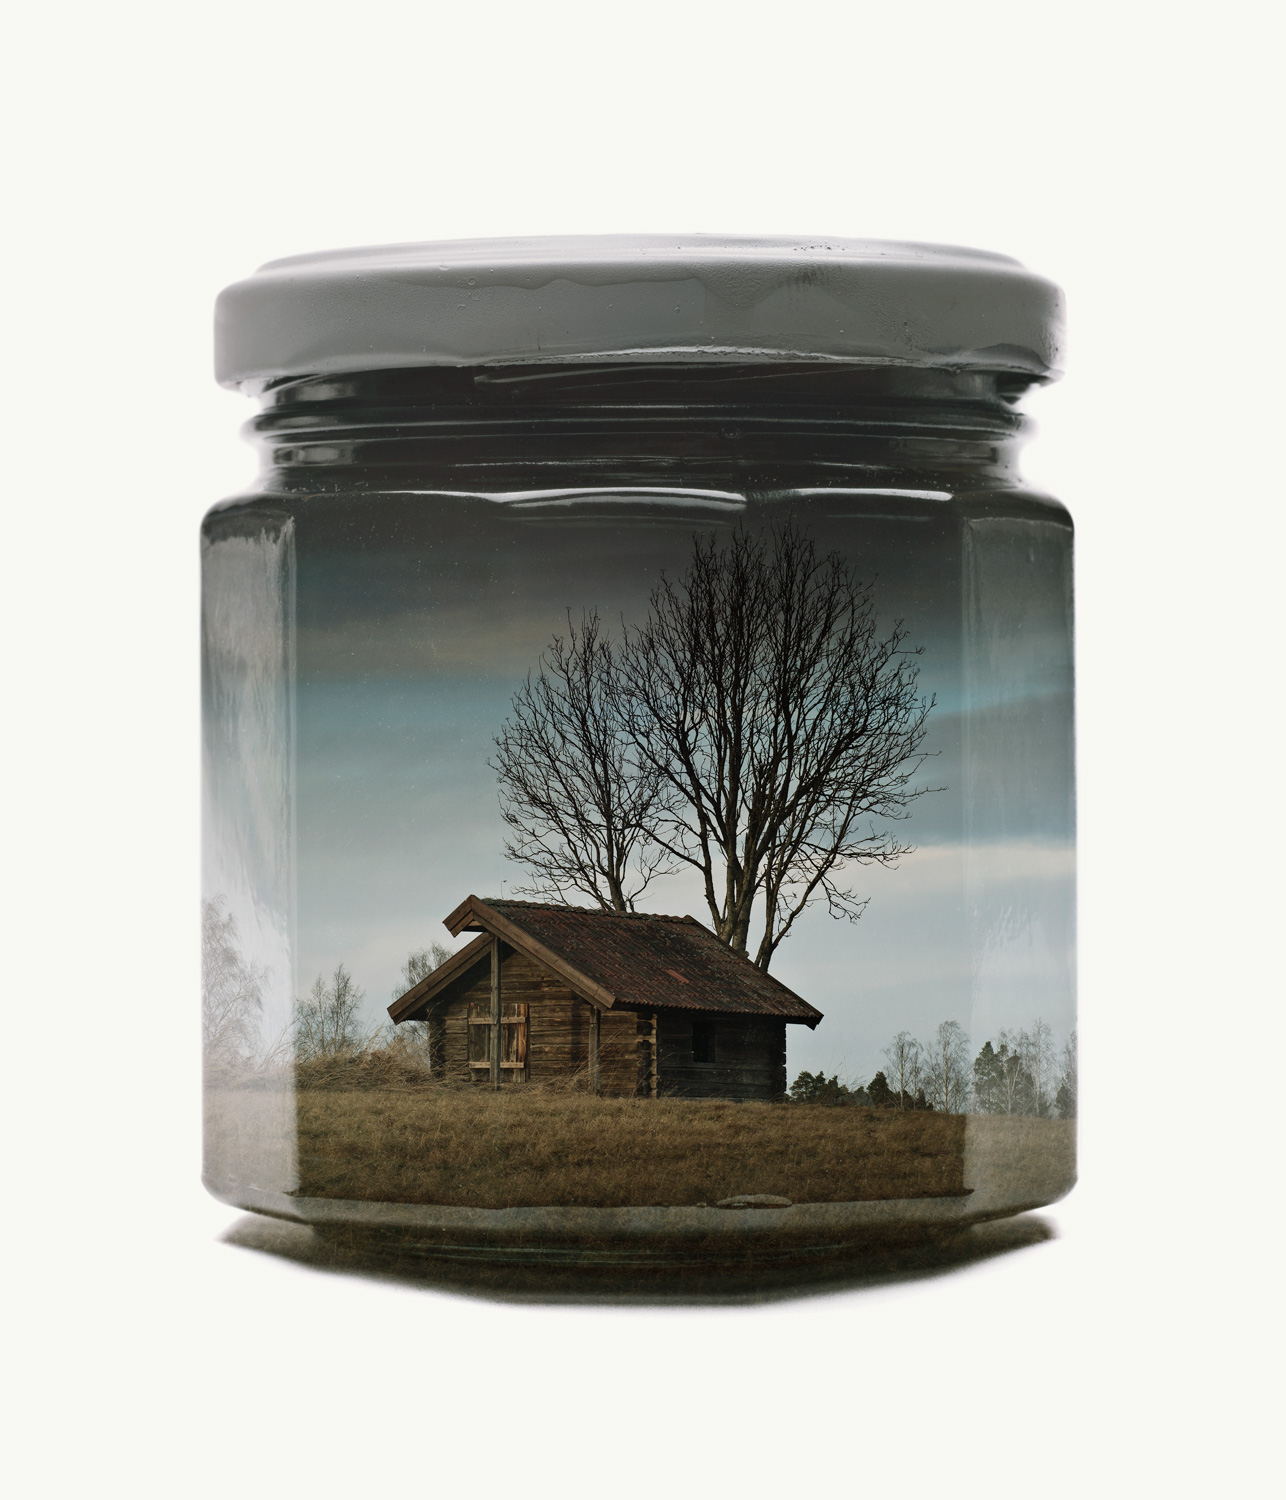 Visual Artwork: Jarred Lone House (Medium) by artist and creator Christoffer Relander